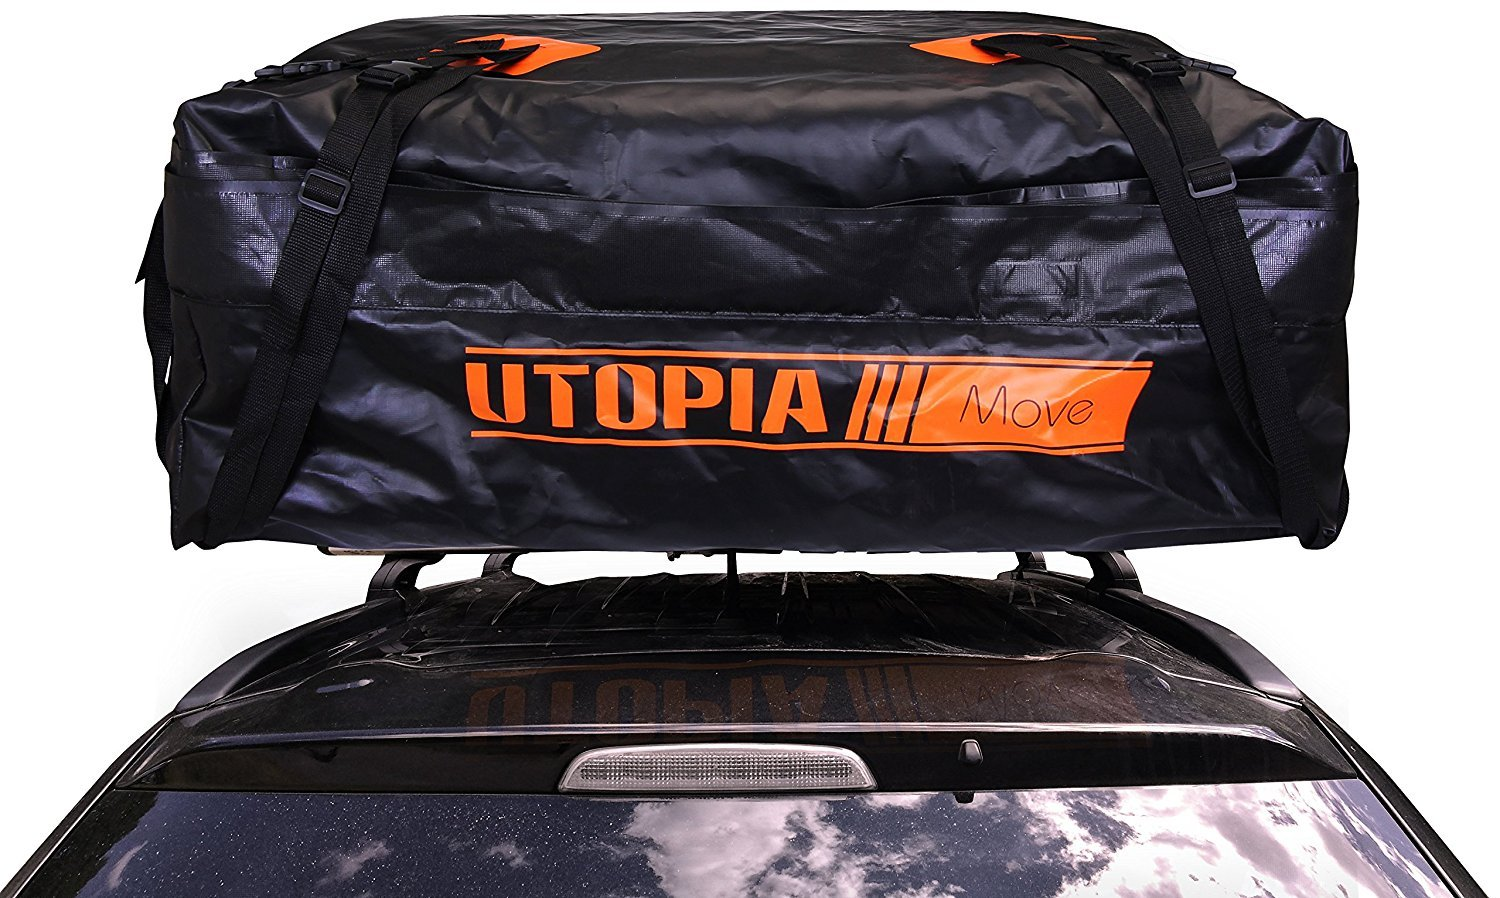 Utopia Bedding Waterproof Cargo Storage Rooftop Bag - On Top of Car Bag - Tarpaulin Material - Soft Sided Design - PP Webbing with Plastic Buckle - Secure Zipper Pullers - Fit for Outdoor